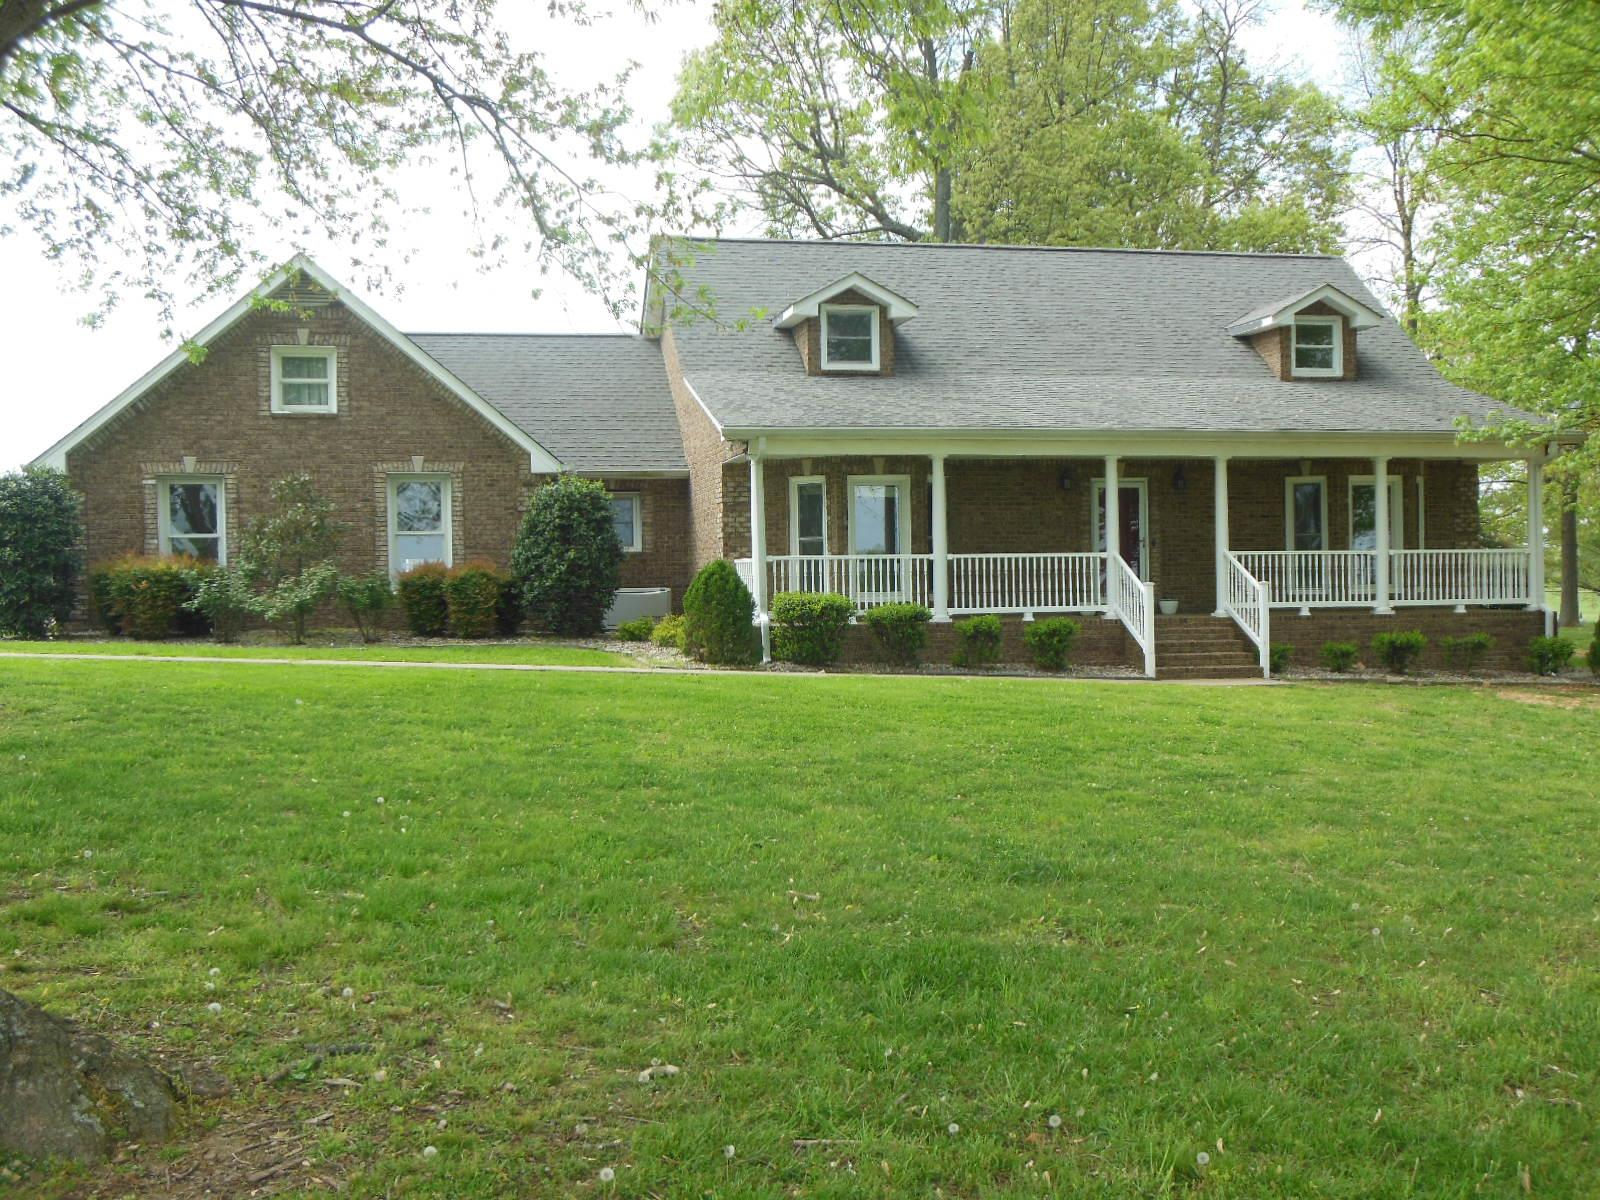 $372,000 - 5Br/3Ba -  for Sale in Horace L Riddle, Cedar Hill